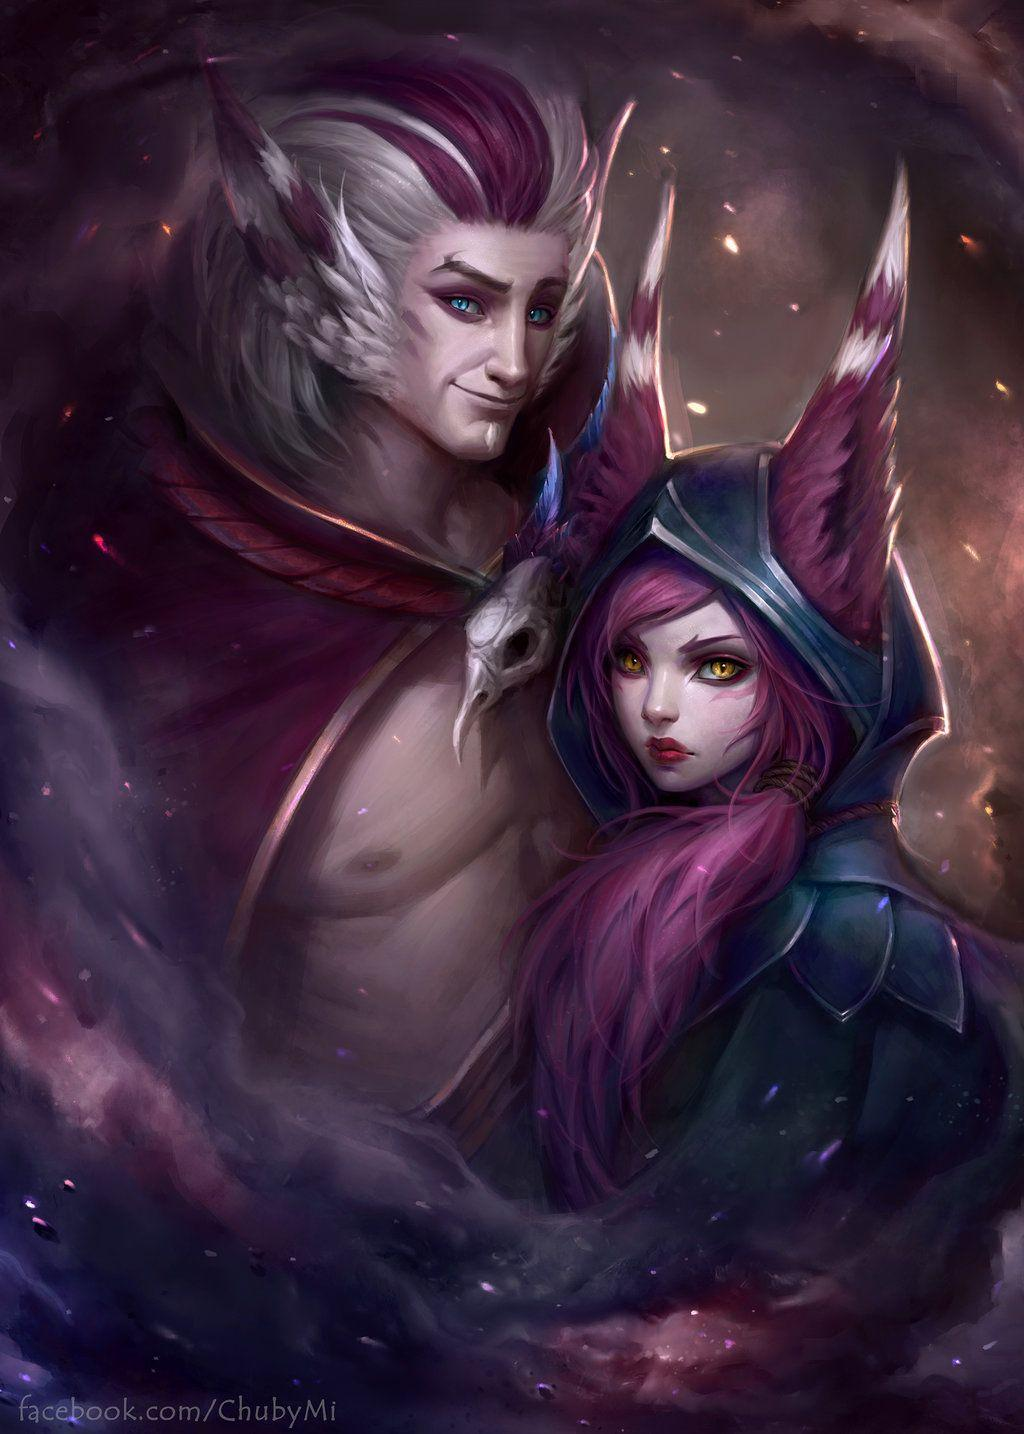 xayah | Explore xayah on DeviantArt